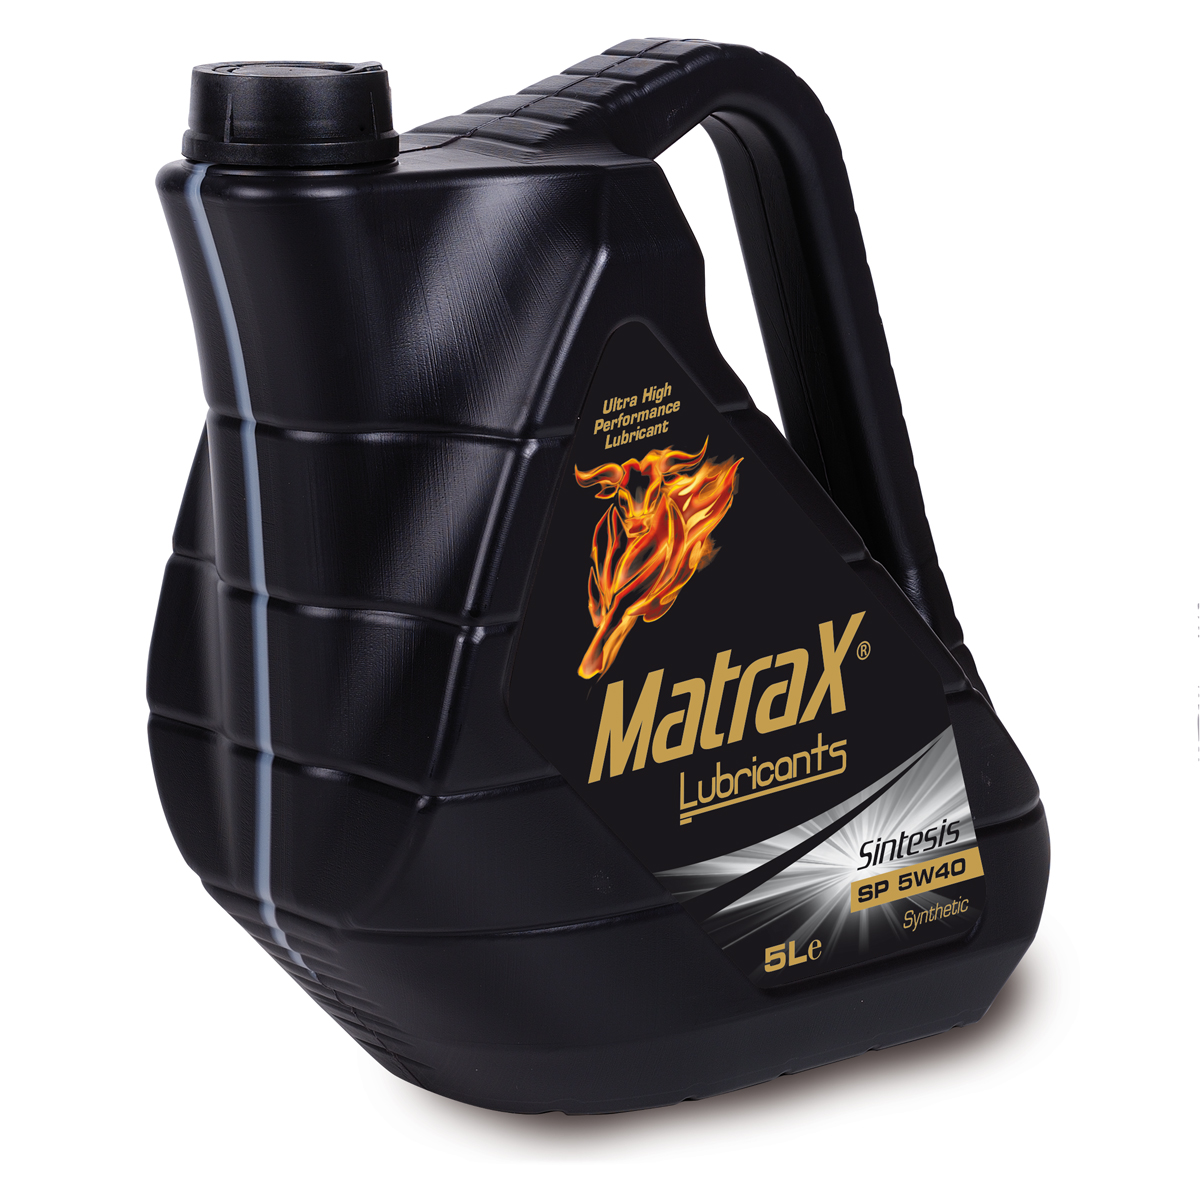 matrax-lubricants-sintesis-sp-5w40-5l